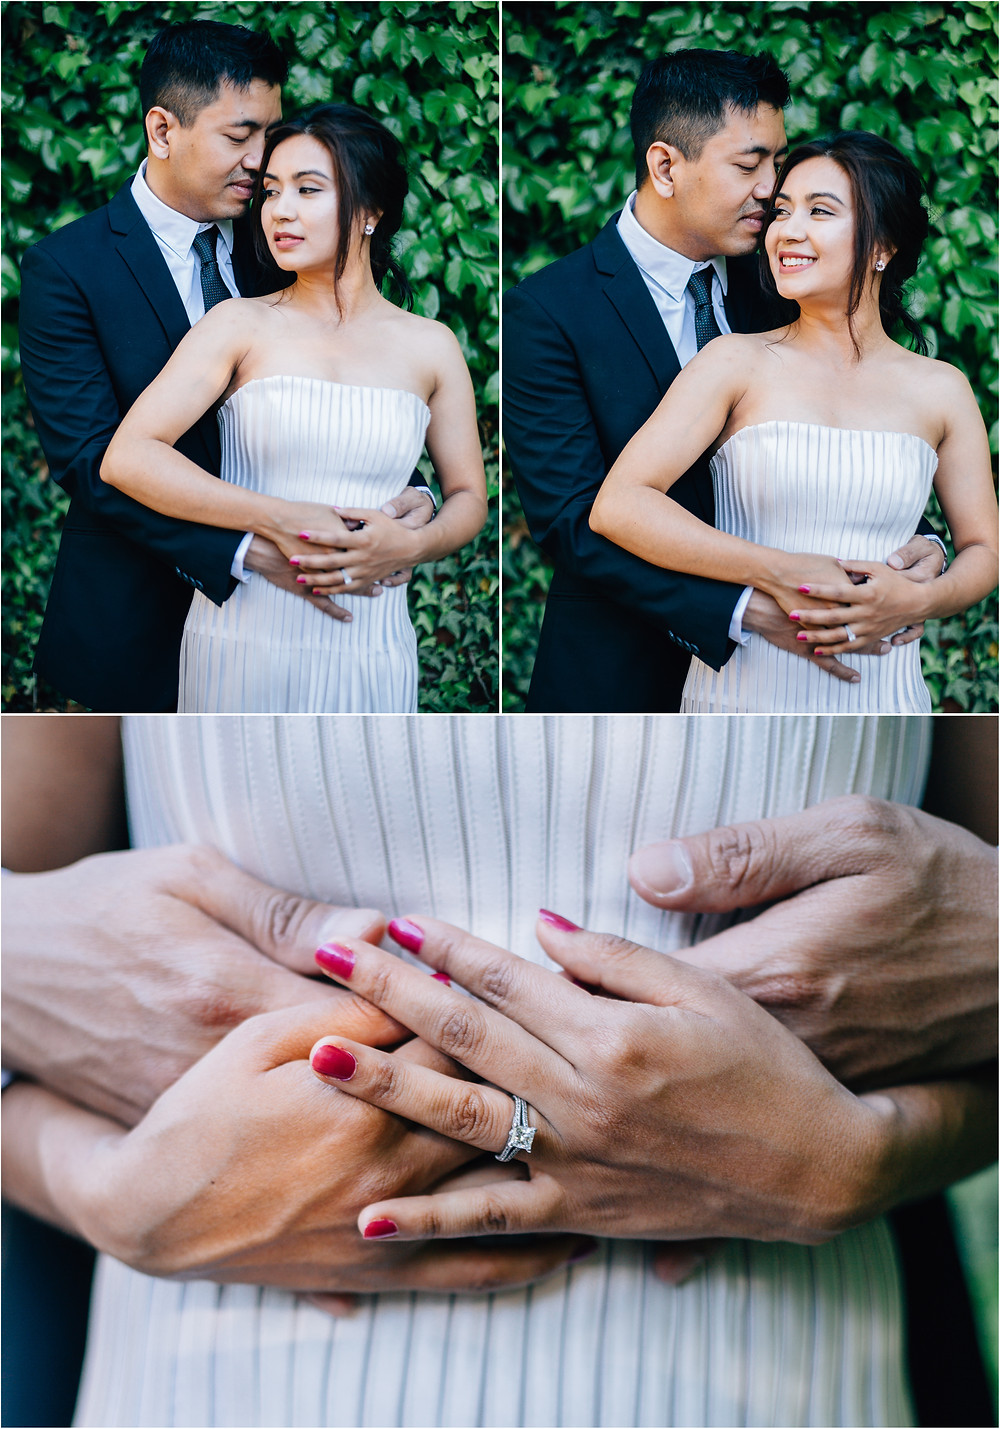 Spring Engagement Session - Frederick Wedding Photographer - Katherine Elizabeth Photography